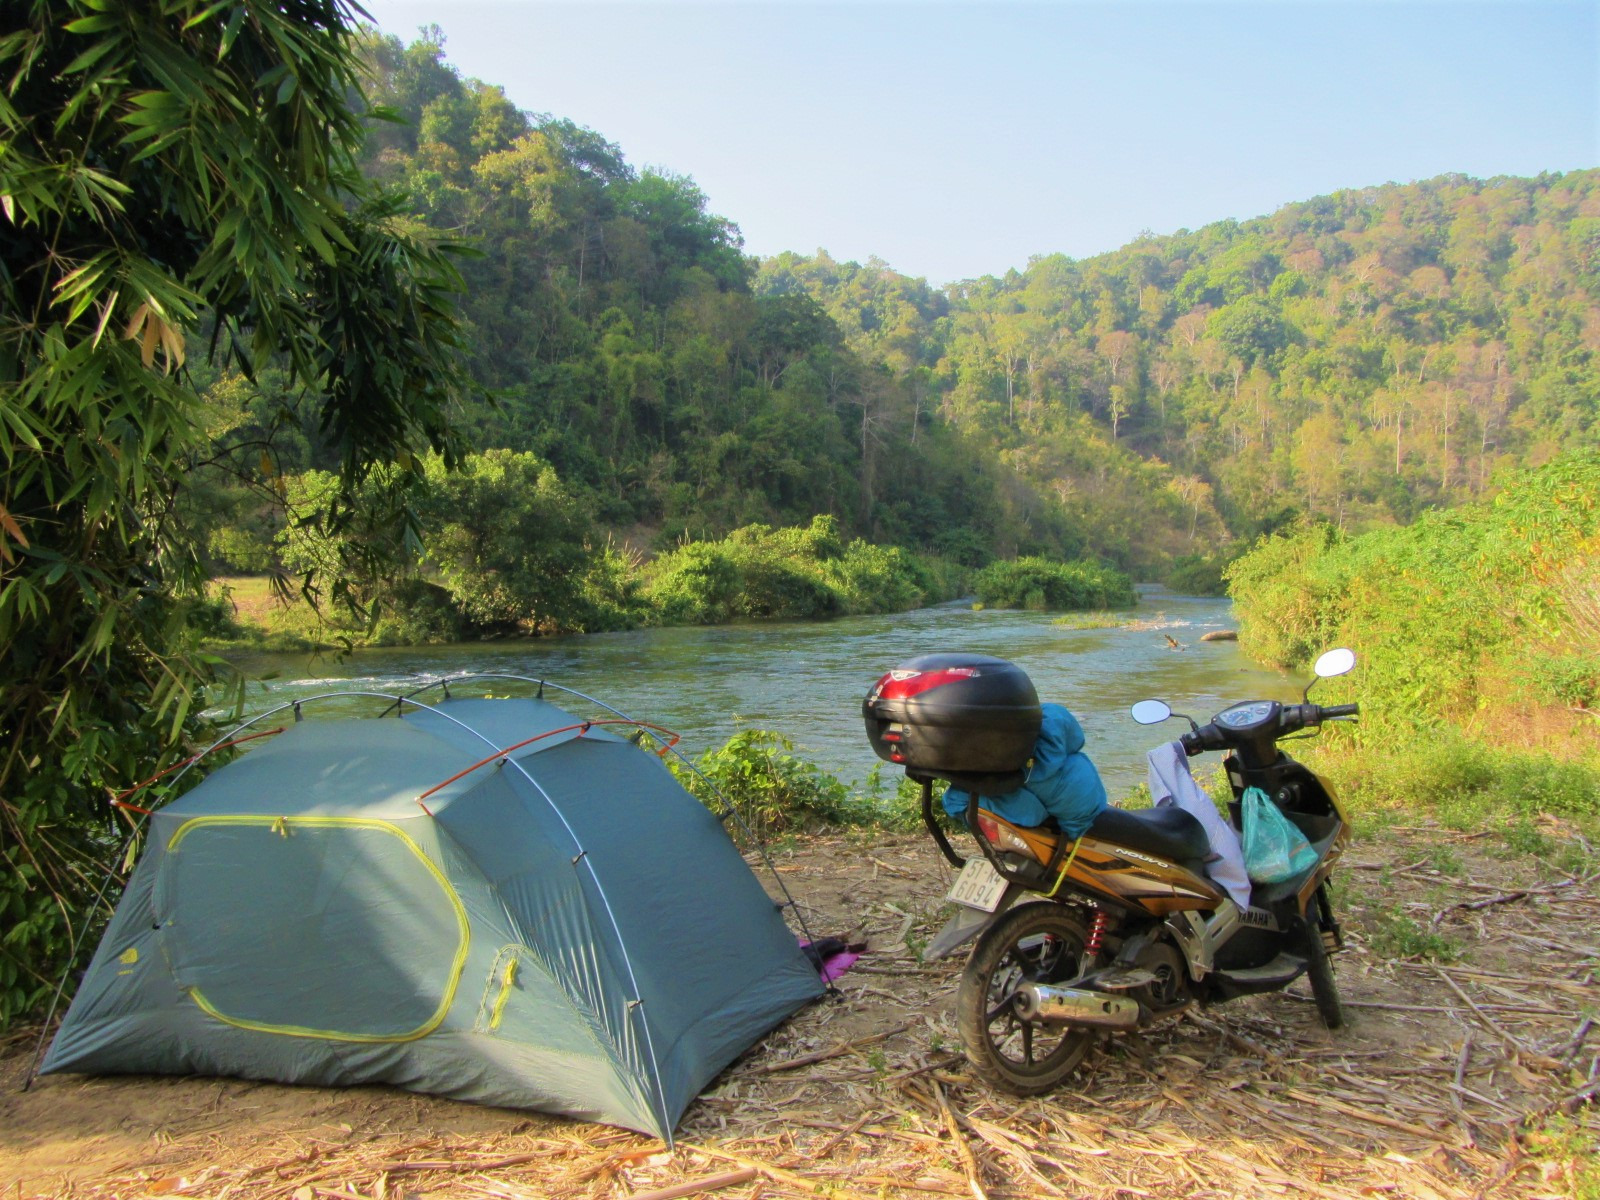 Motocamping on the La Nga River, south-central Vietnam